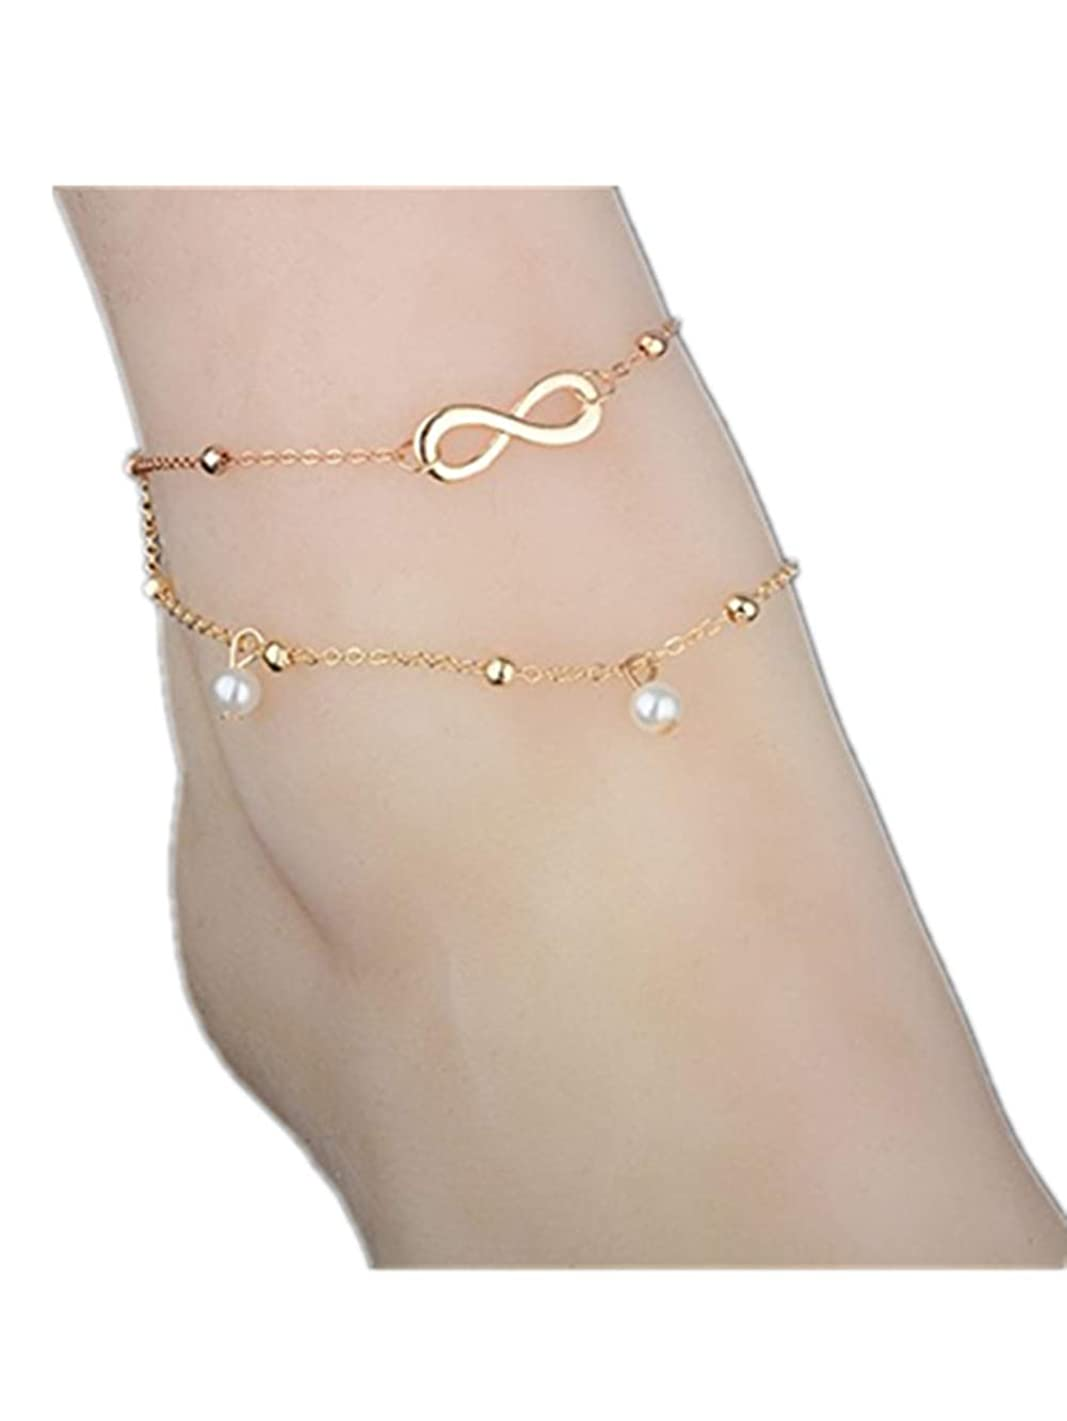 Afco Boho Beach Sandal Barefoot Infinity Charm Bead Ankle Bracelet 2 Layers Anklet Summer Beach Jewelry